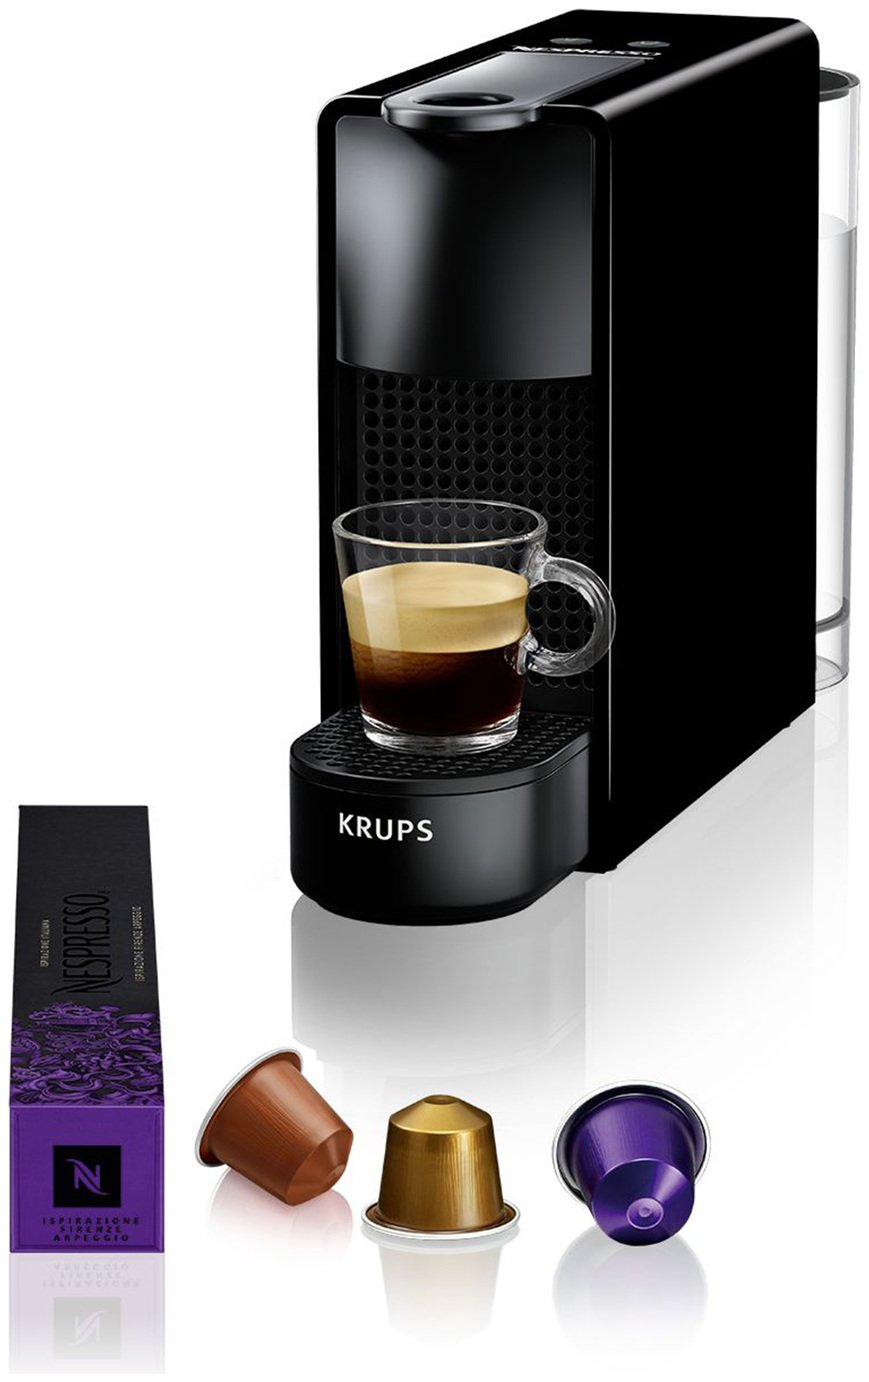 Nespresso Machine Offers Nespresso Find Offers Online And Compare Prices At Wunderstore